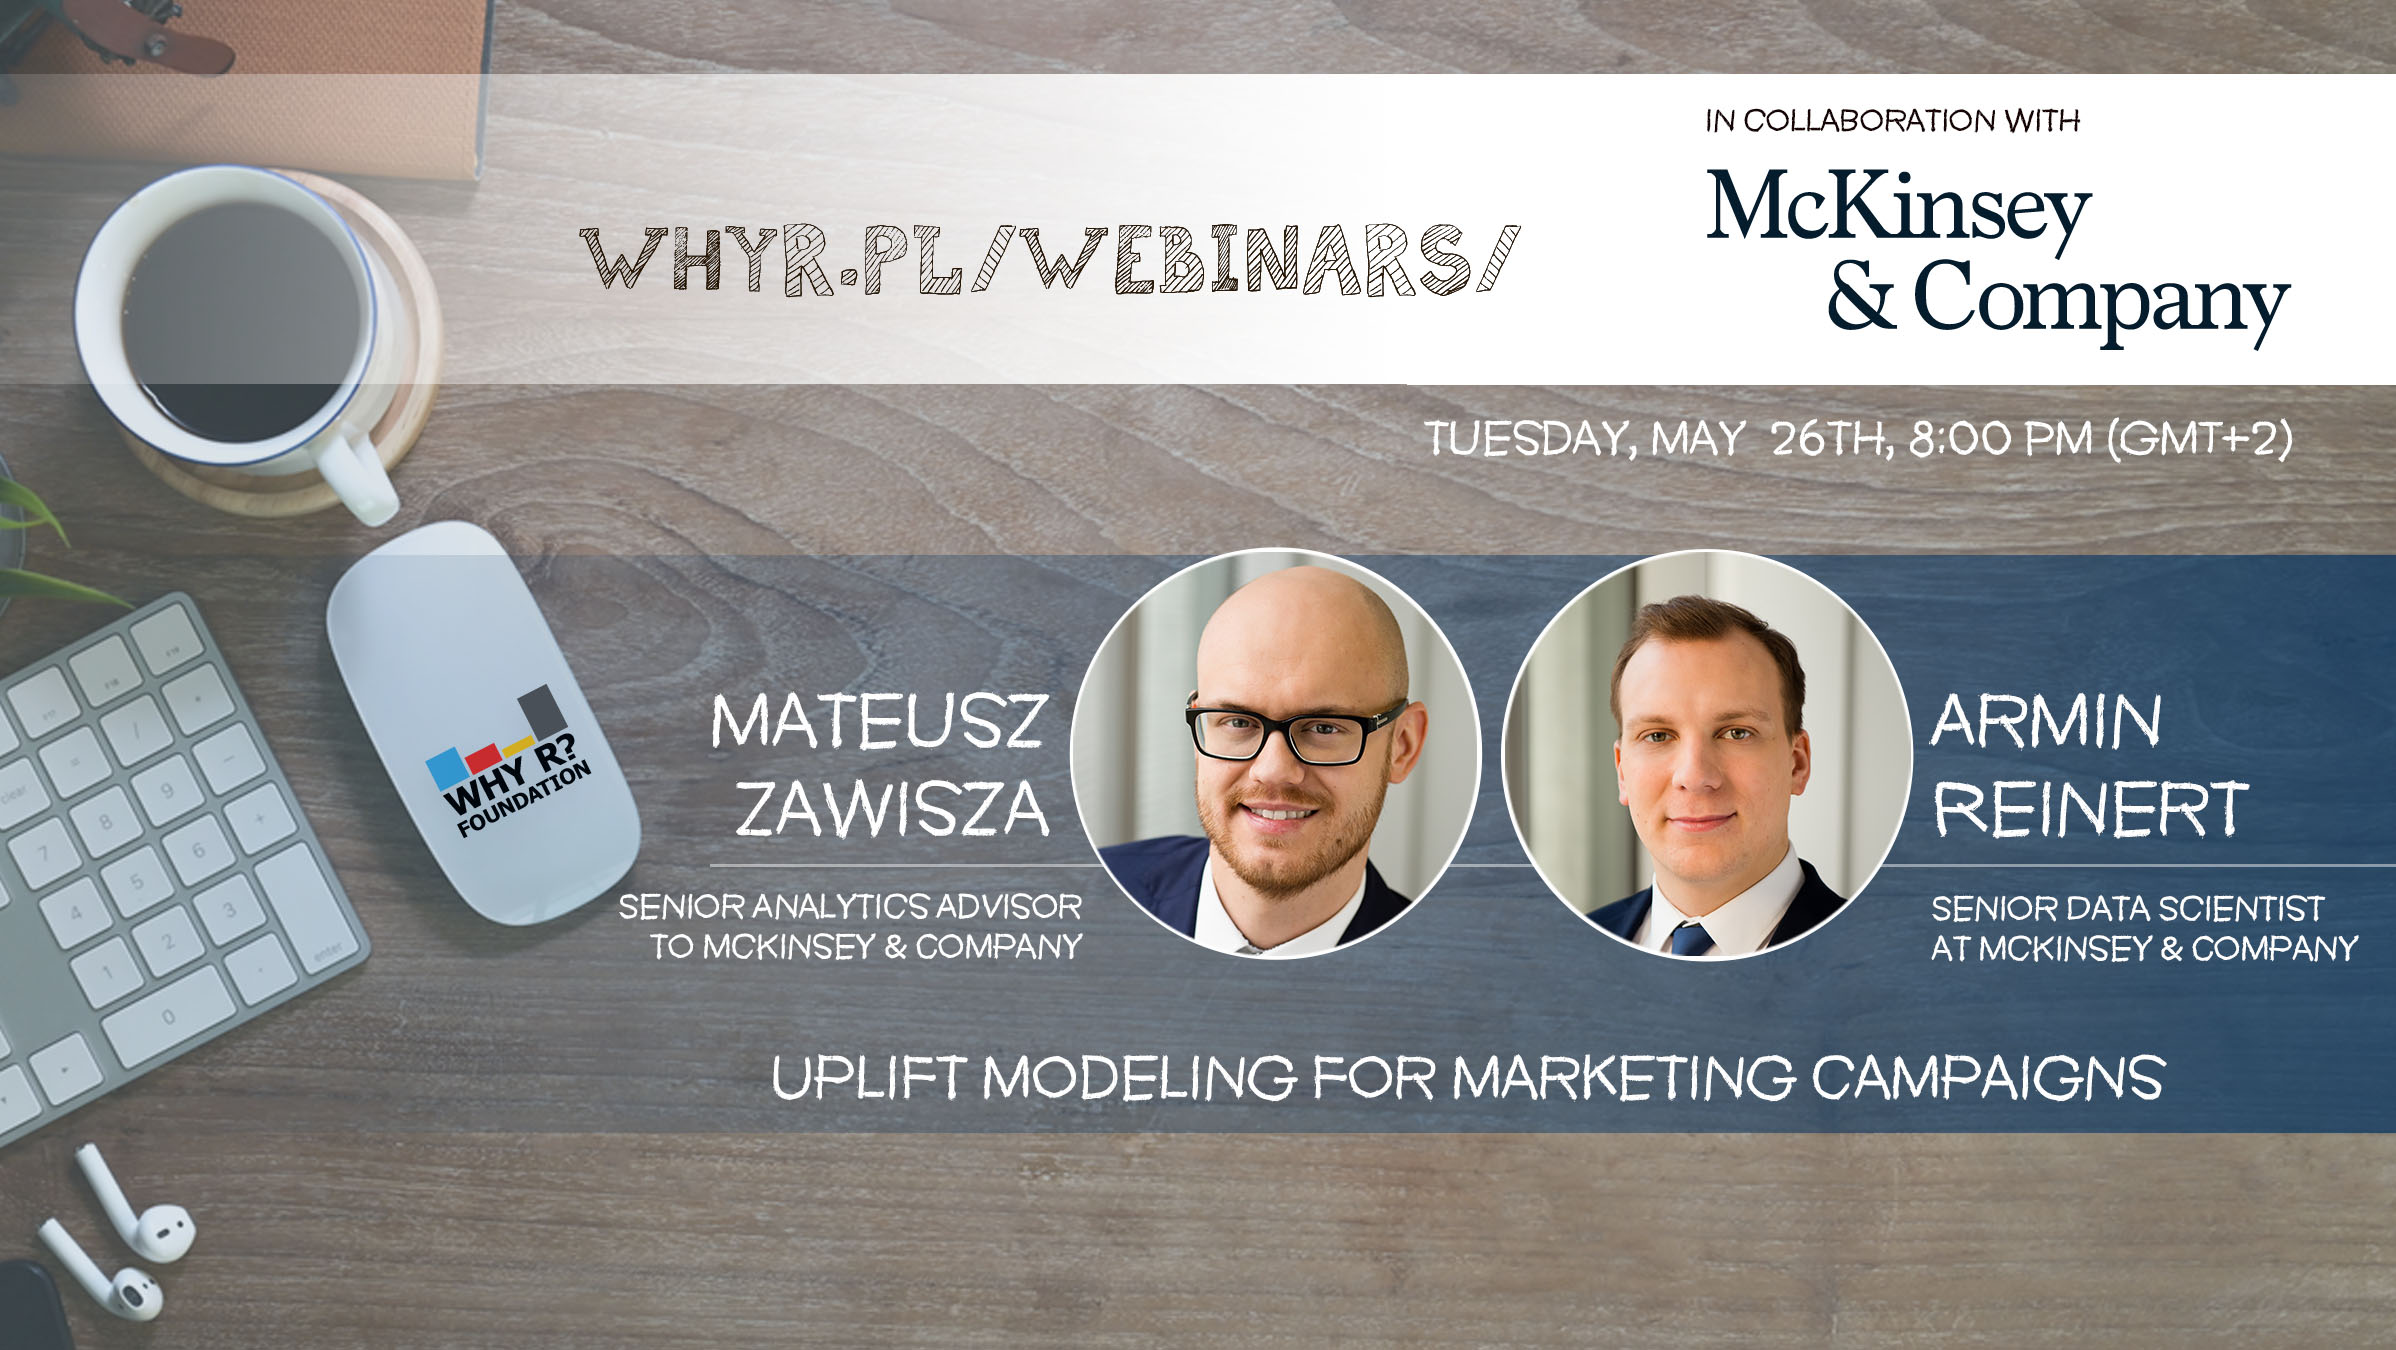 Why R? Webinar – TUESDAY – Uplift modeling for marketing campaigns